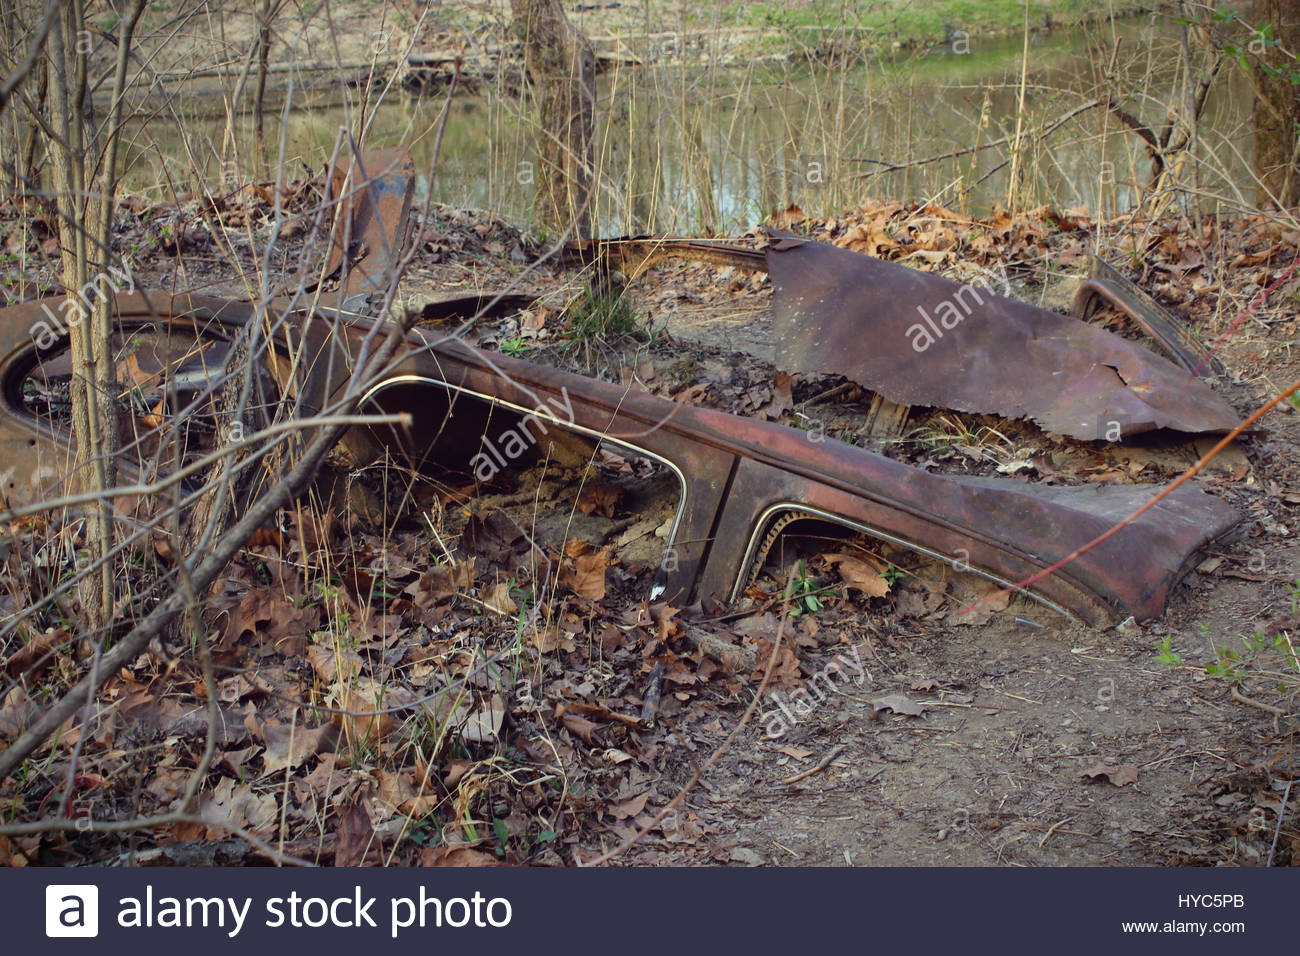 Old abandoned car in local park - Stock Image